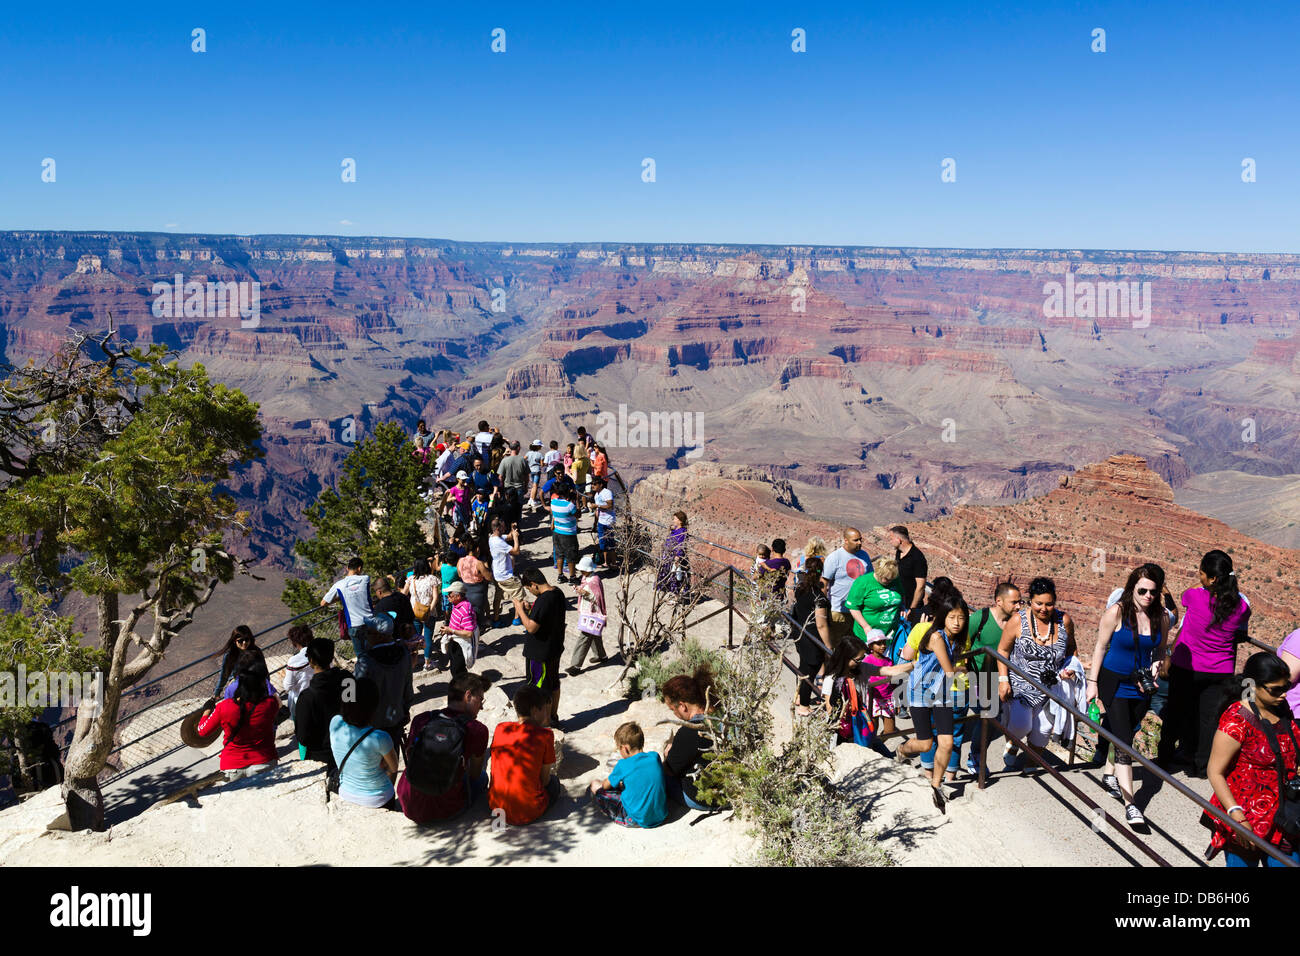 Crowd of tourists at Mather Point Lookout, South Rim, Grand Canyon National Park, Arizona, USA - Stock Image